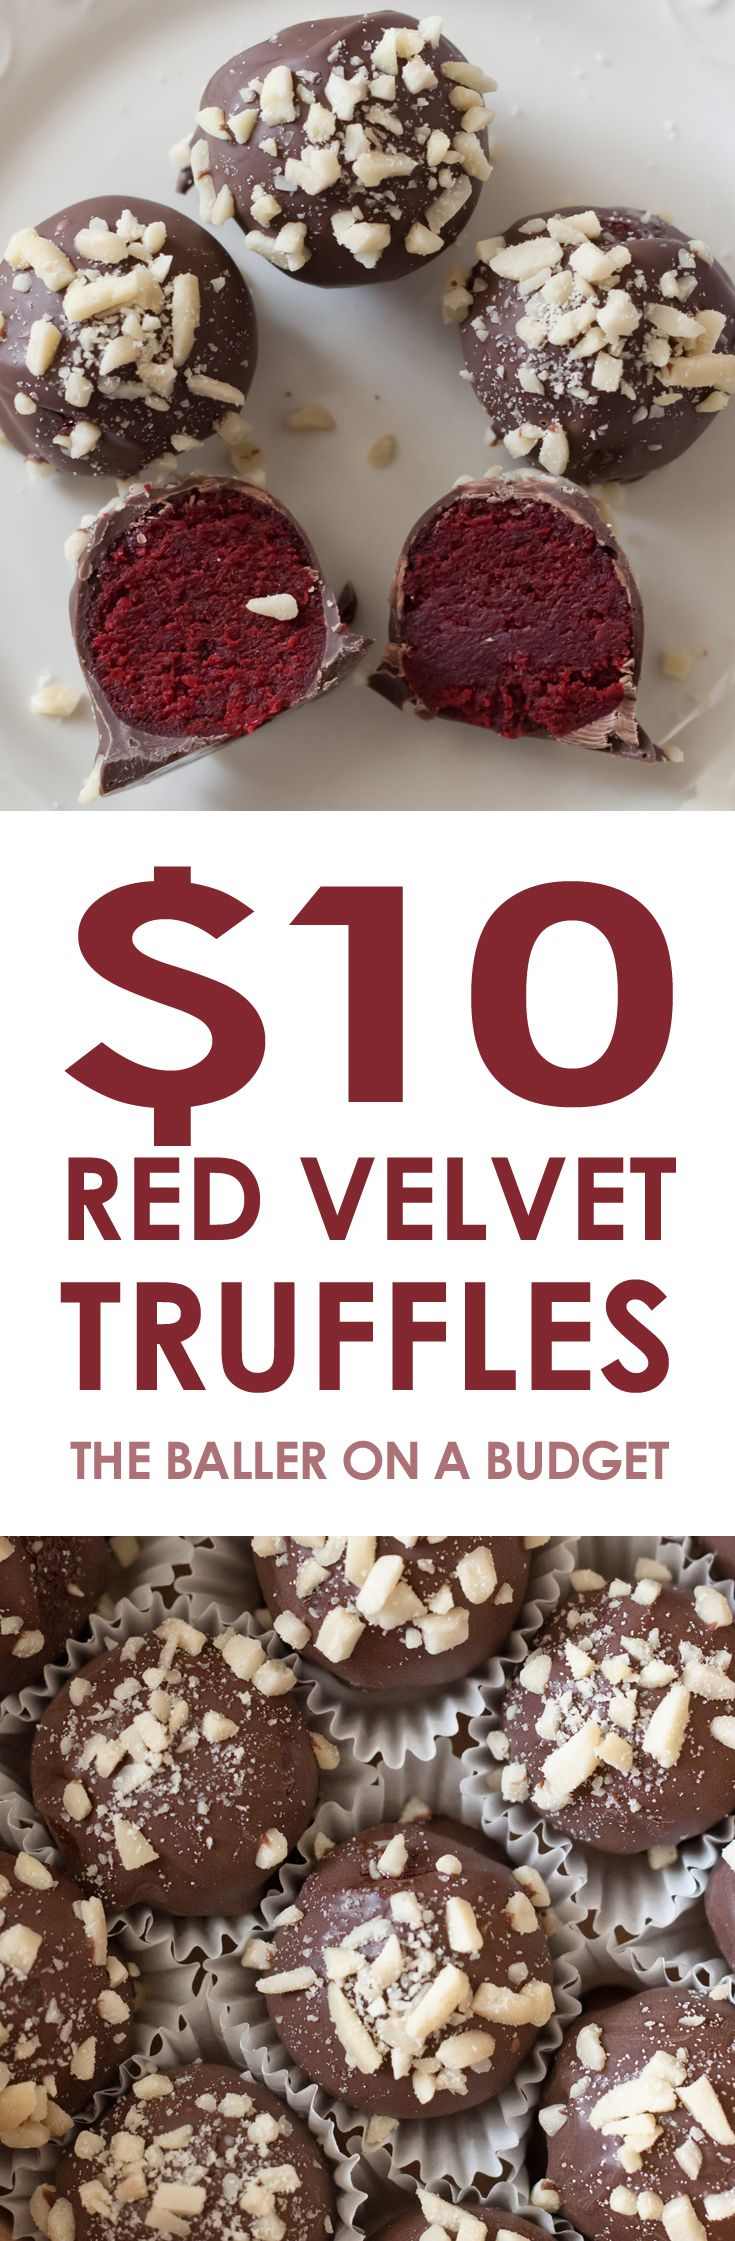 These quick and delicious red velvet Truffles cost less than $10 to make and are perfect for holiday feasts and Christmas presents!